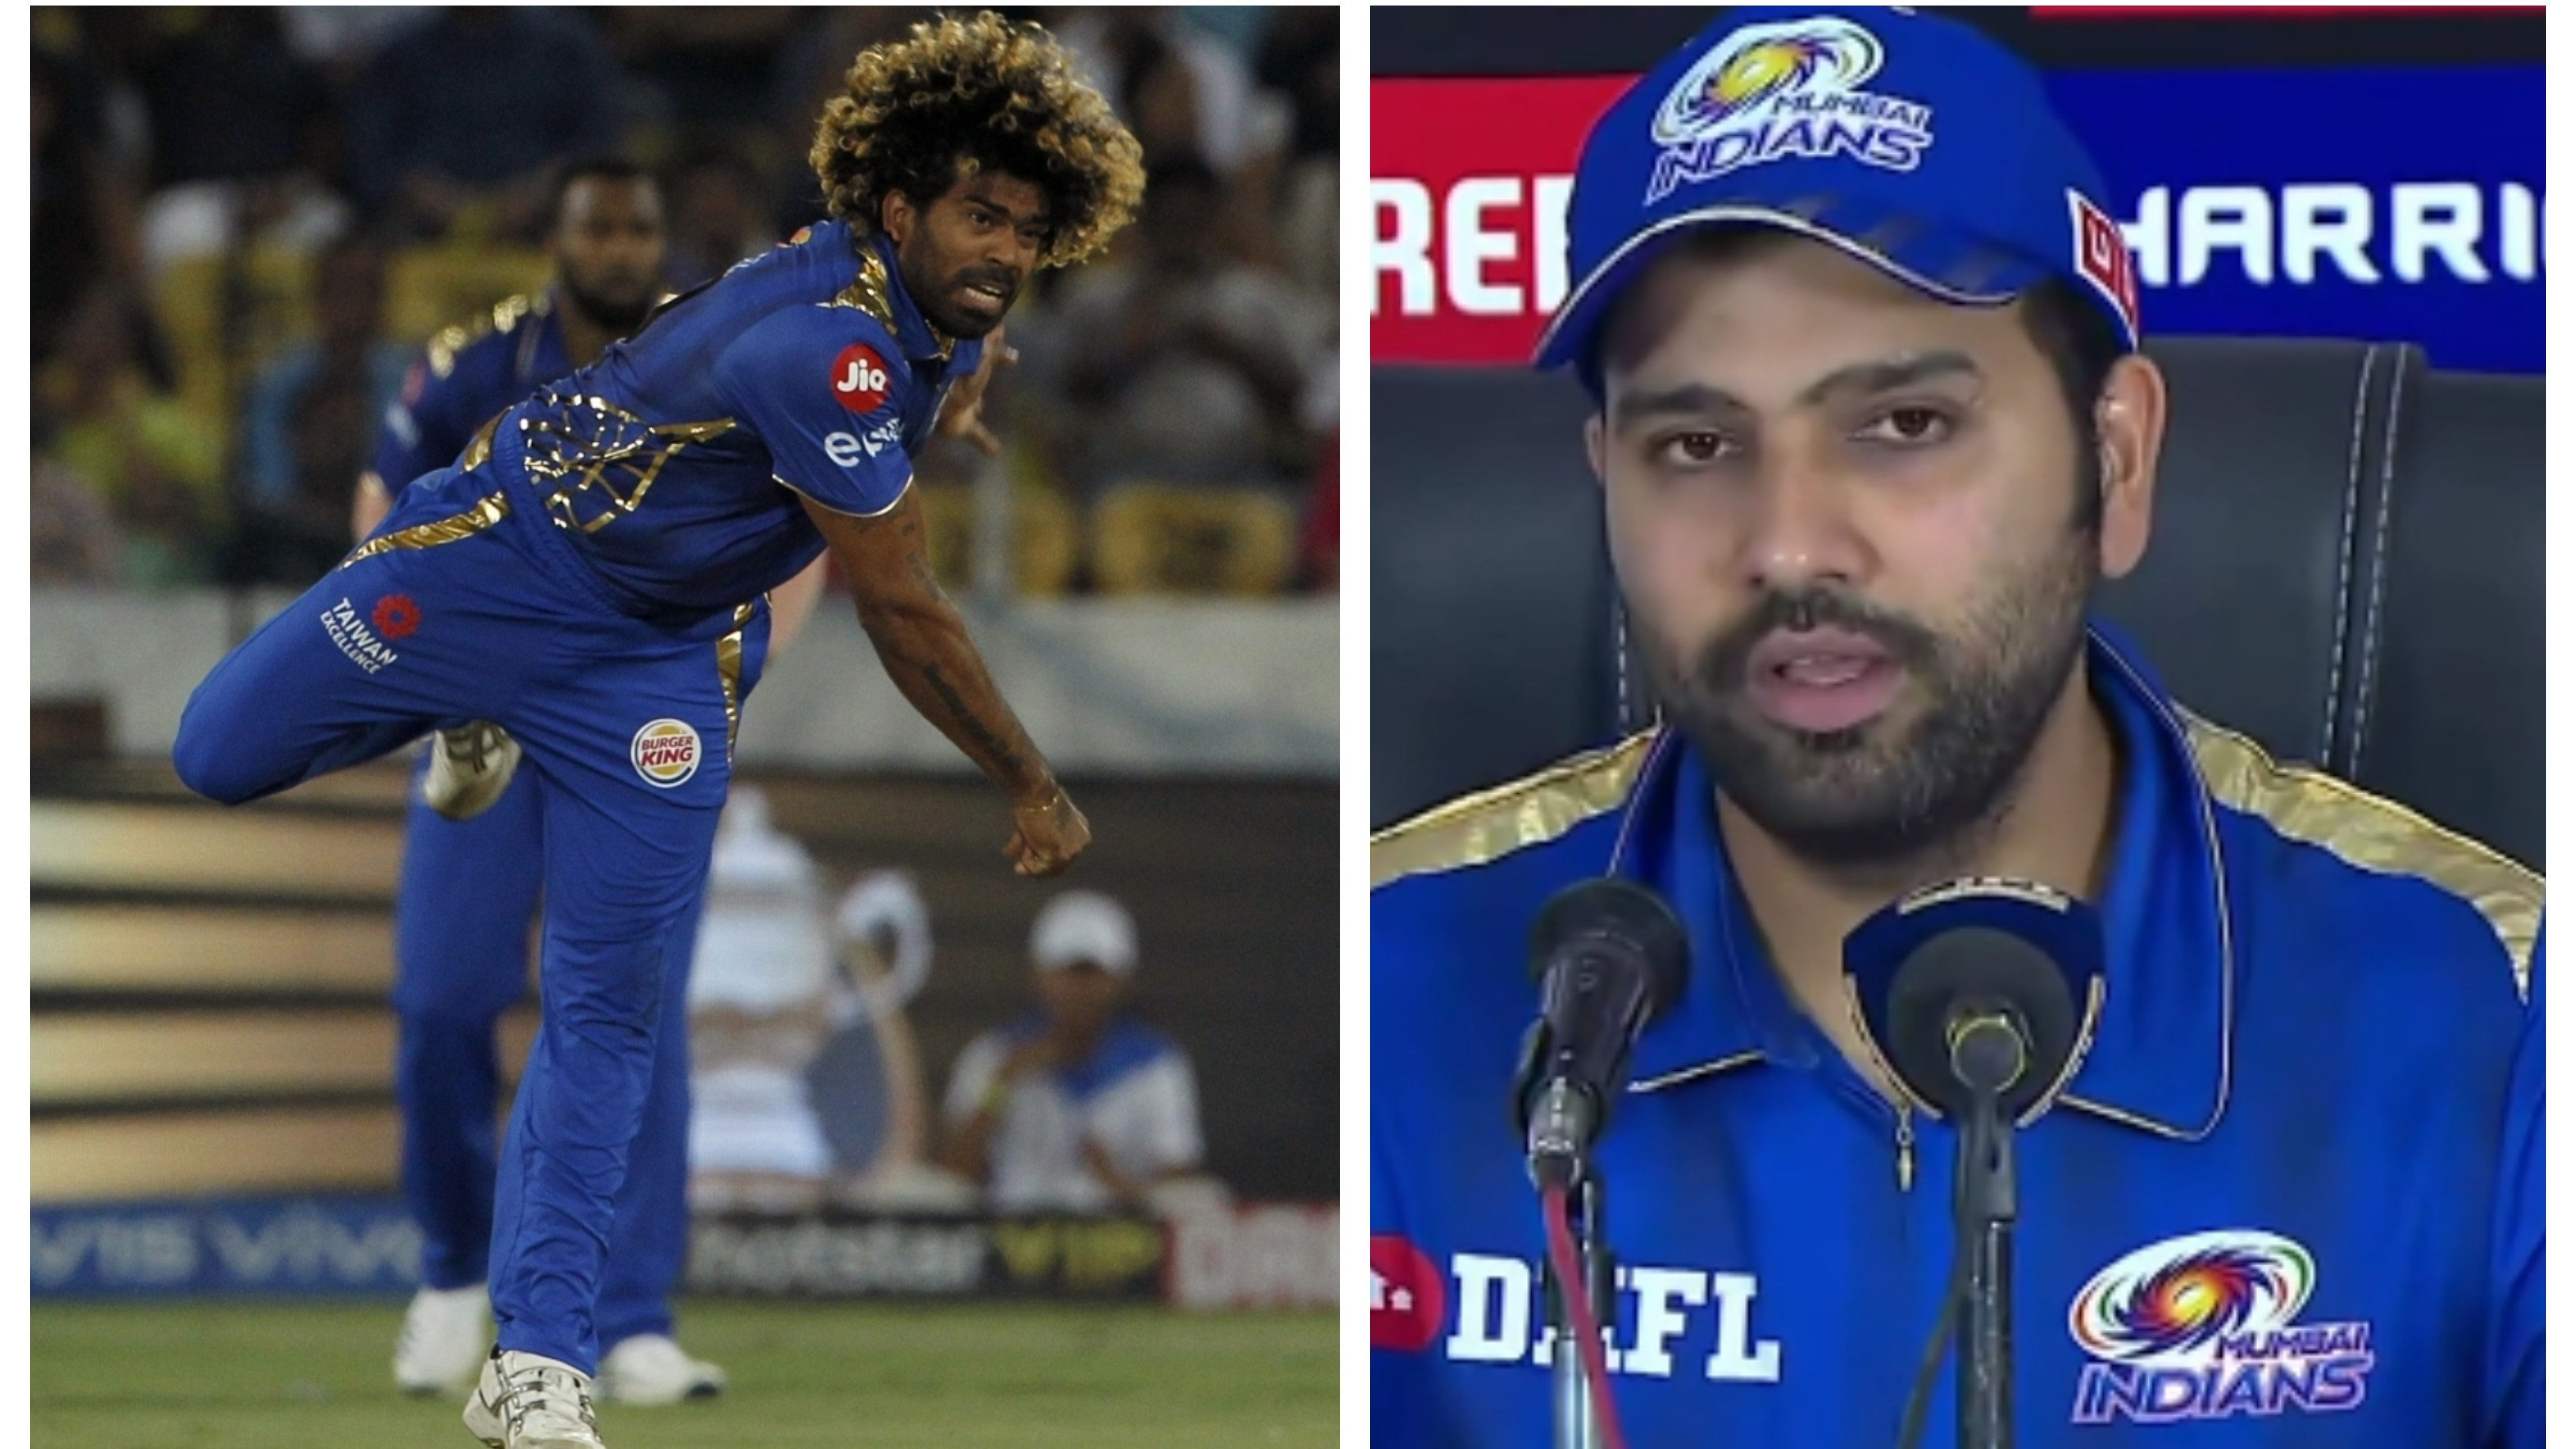 IPL 2019: Rohit Sharma explains why he suggested Malinga to bowl a slower delivery against Shardul